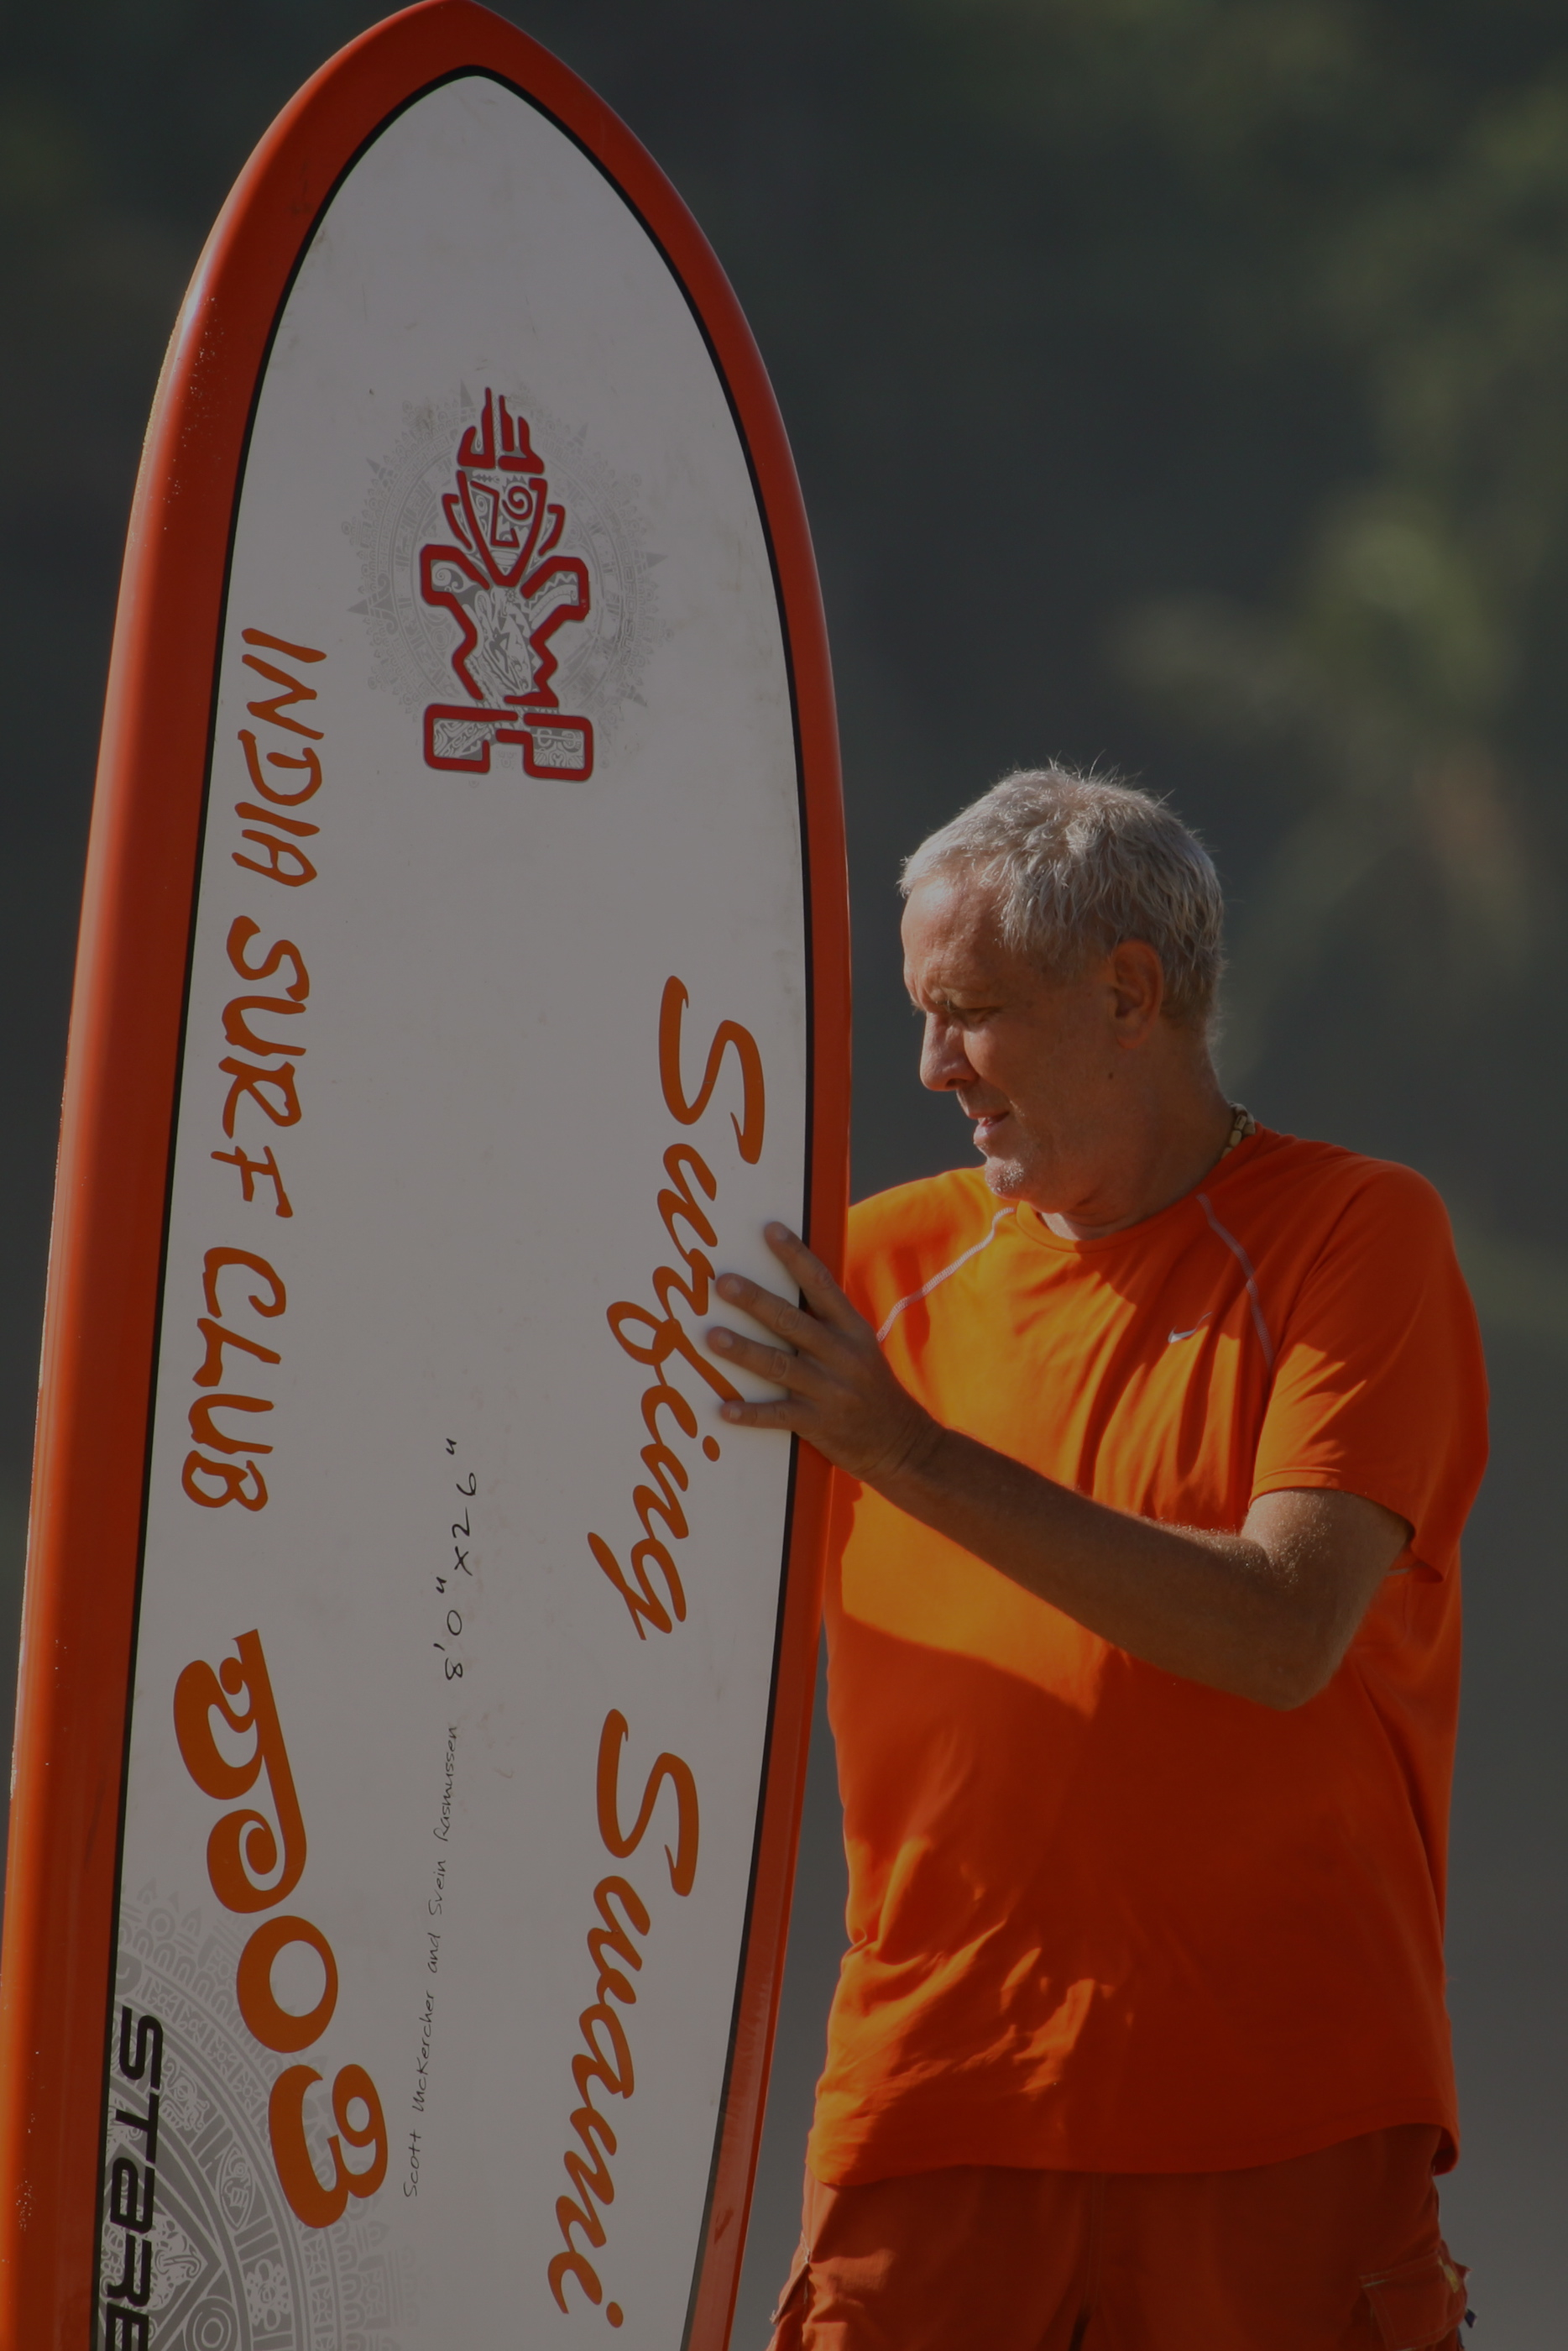 The Surfing Swami. Photo:  Rammohan Paranjape